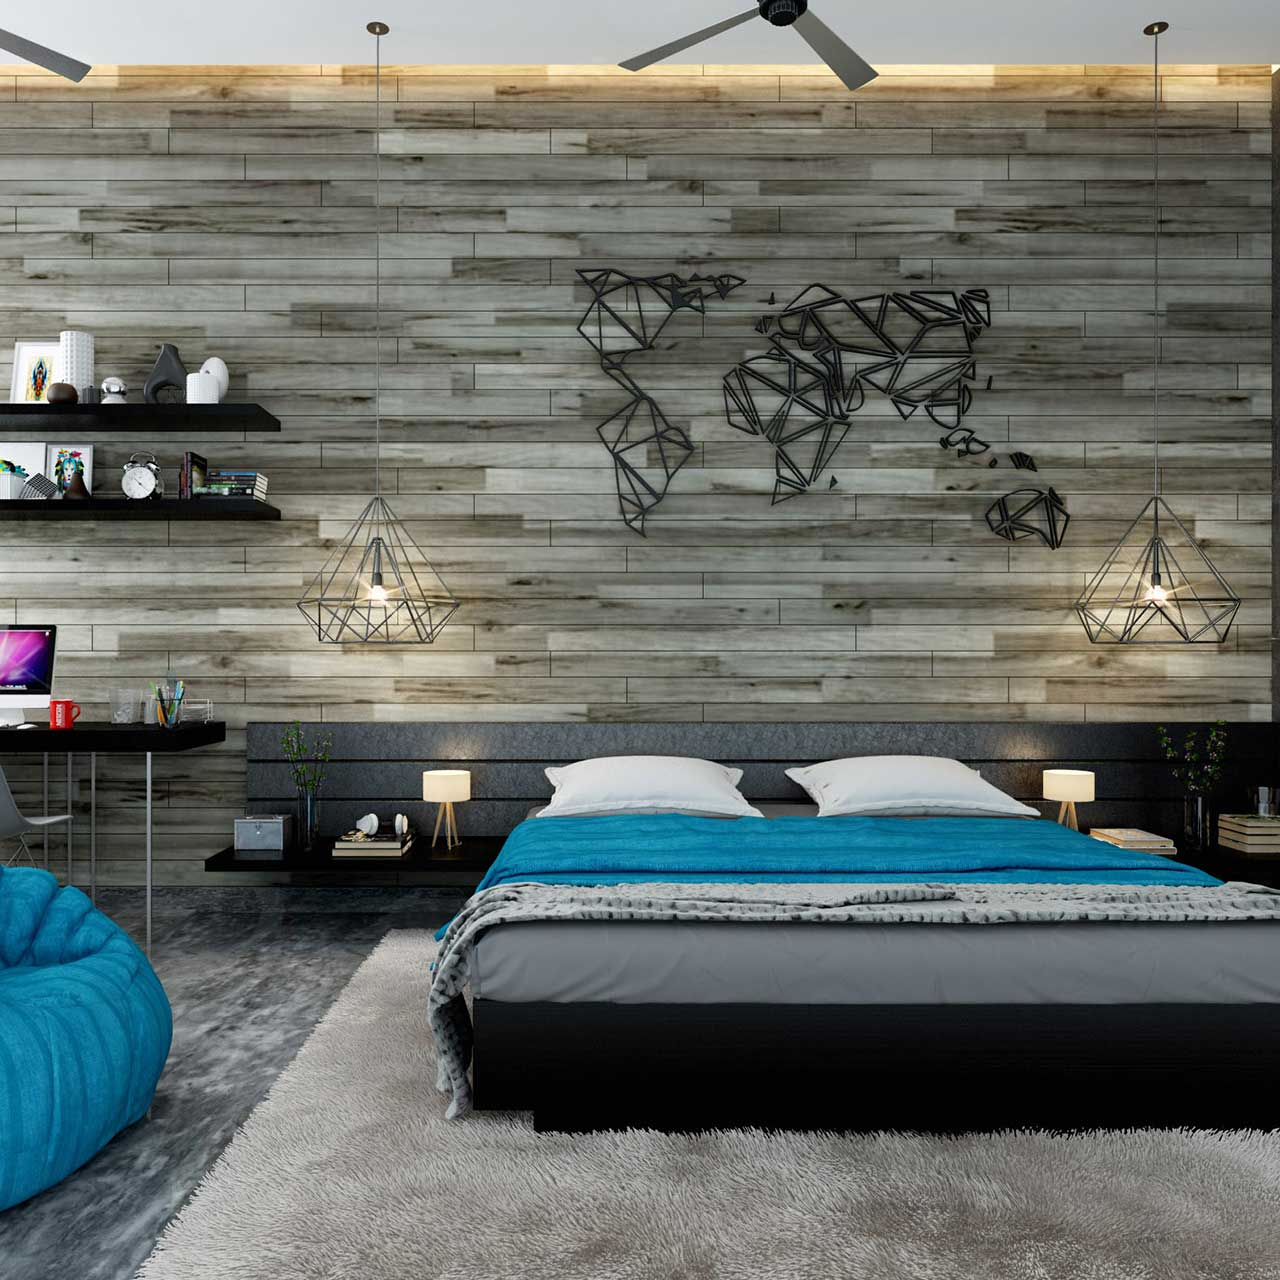 bedroom with a wallpaper for a beautiful backdrop and lightings in this bedroom interior